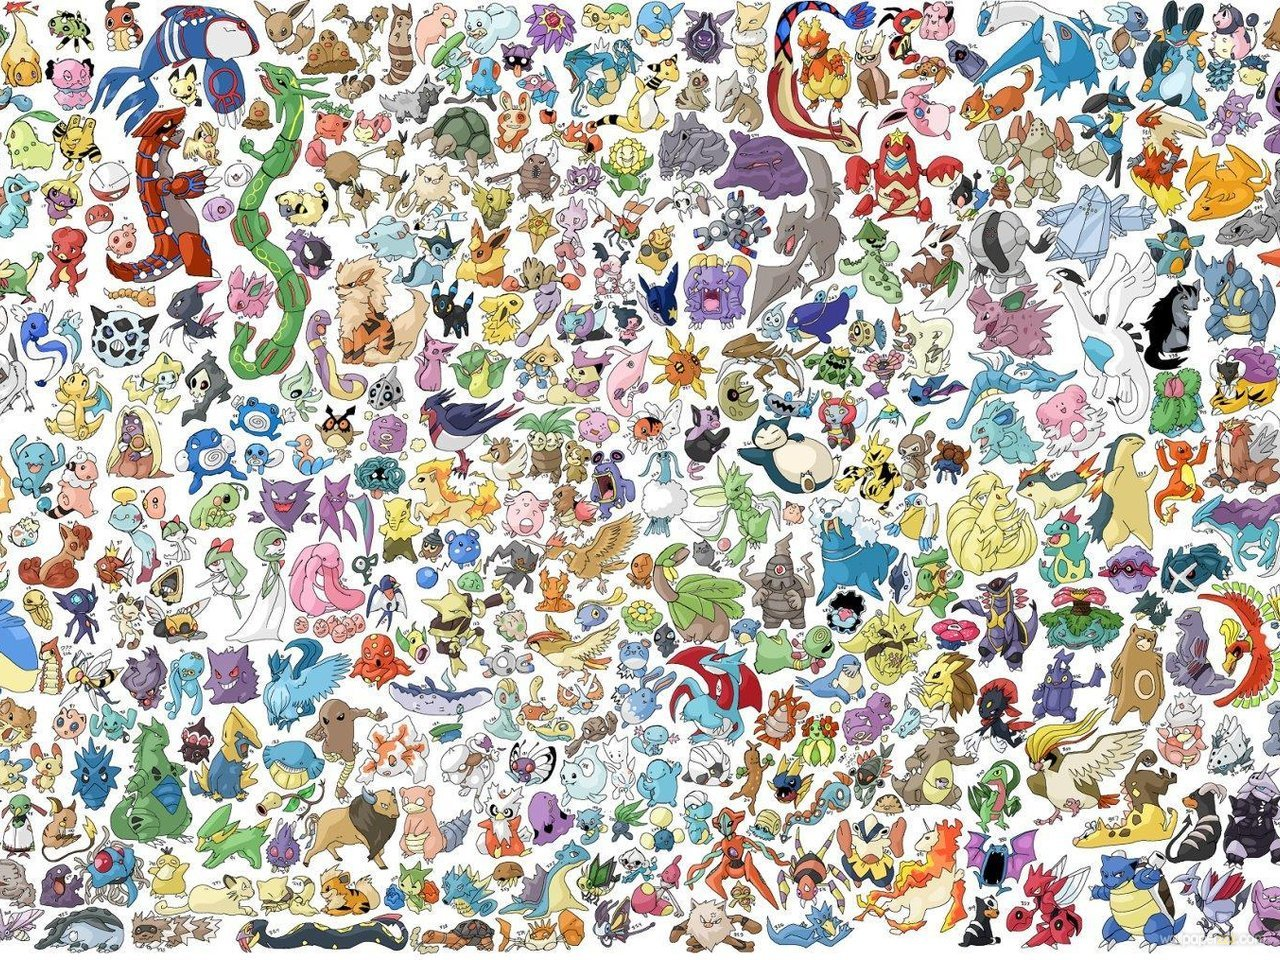 Download Pokemon Wallpaper - Free Wallpaper